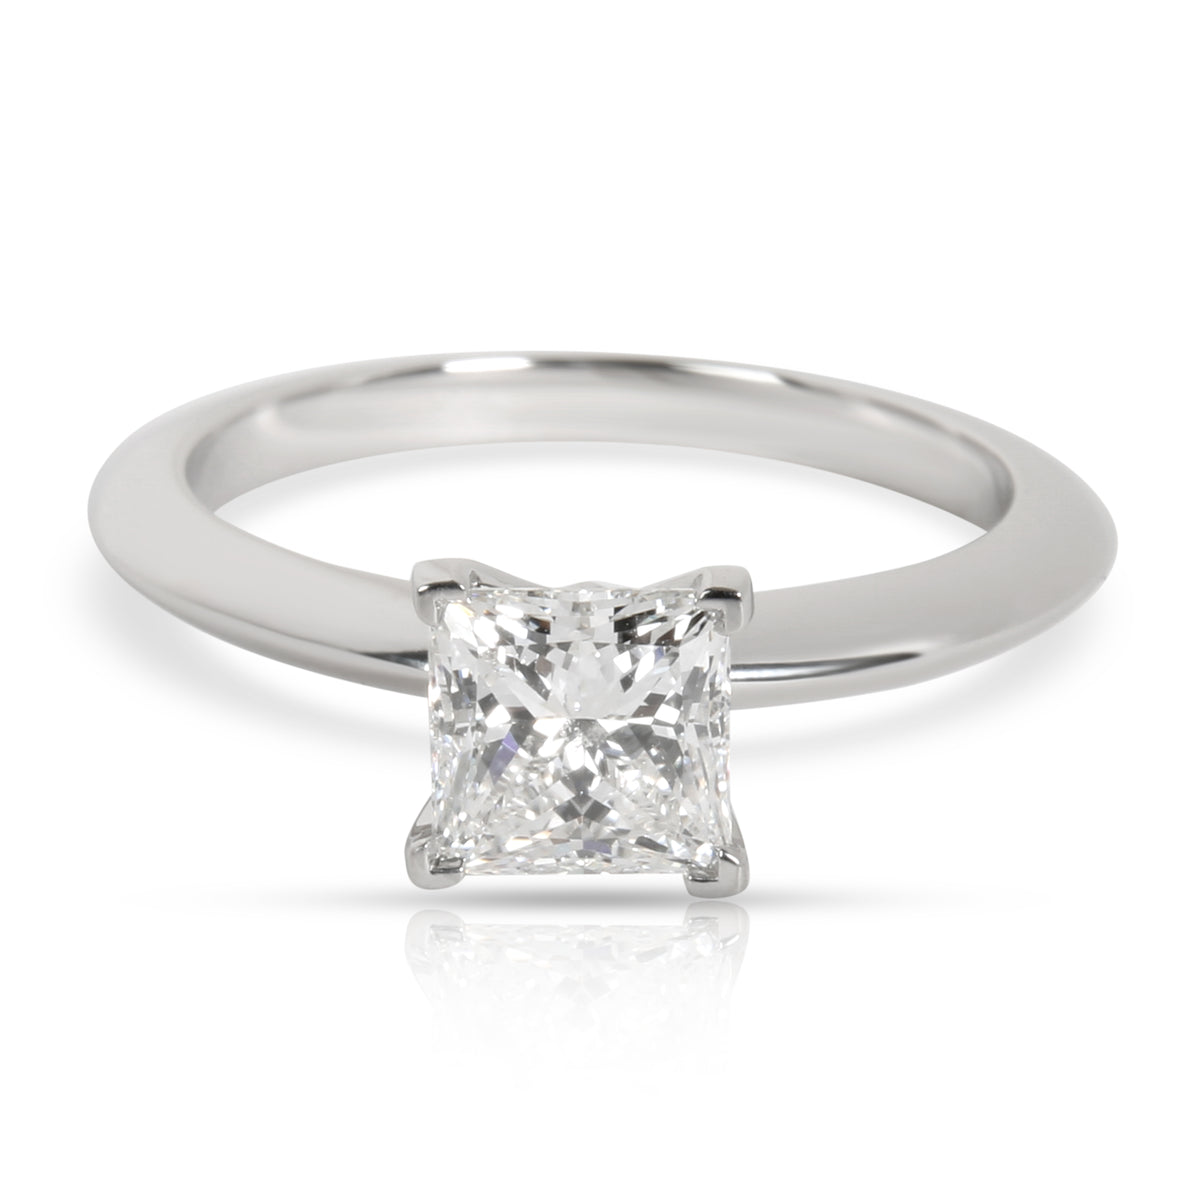 Tiffany & Co. Solitaire Diamond Engagement Ring in Platinum E VVS1 0.97 CTW